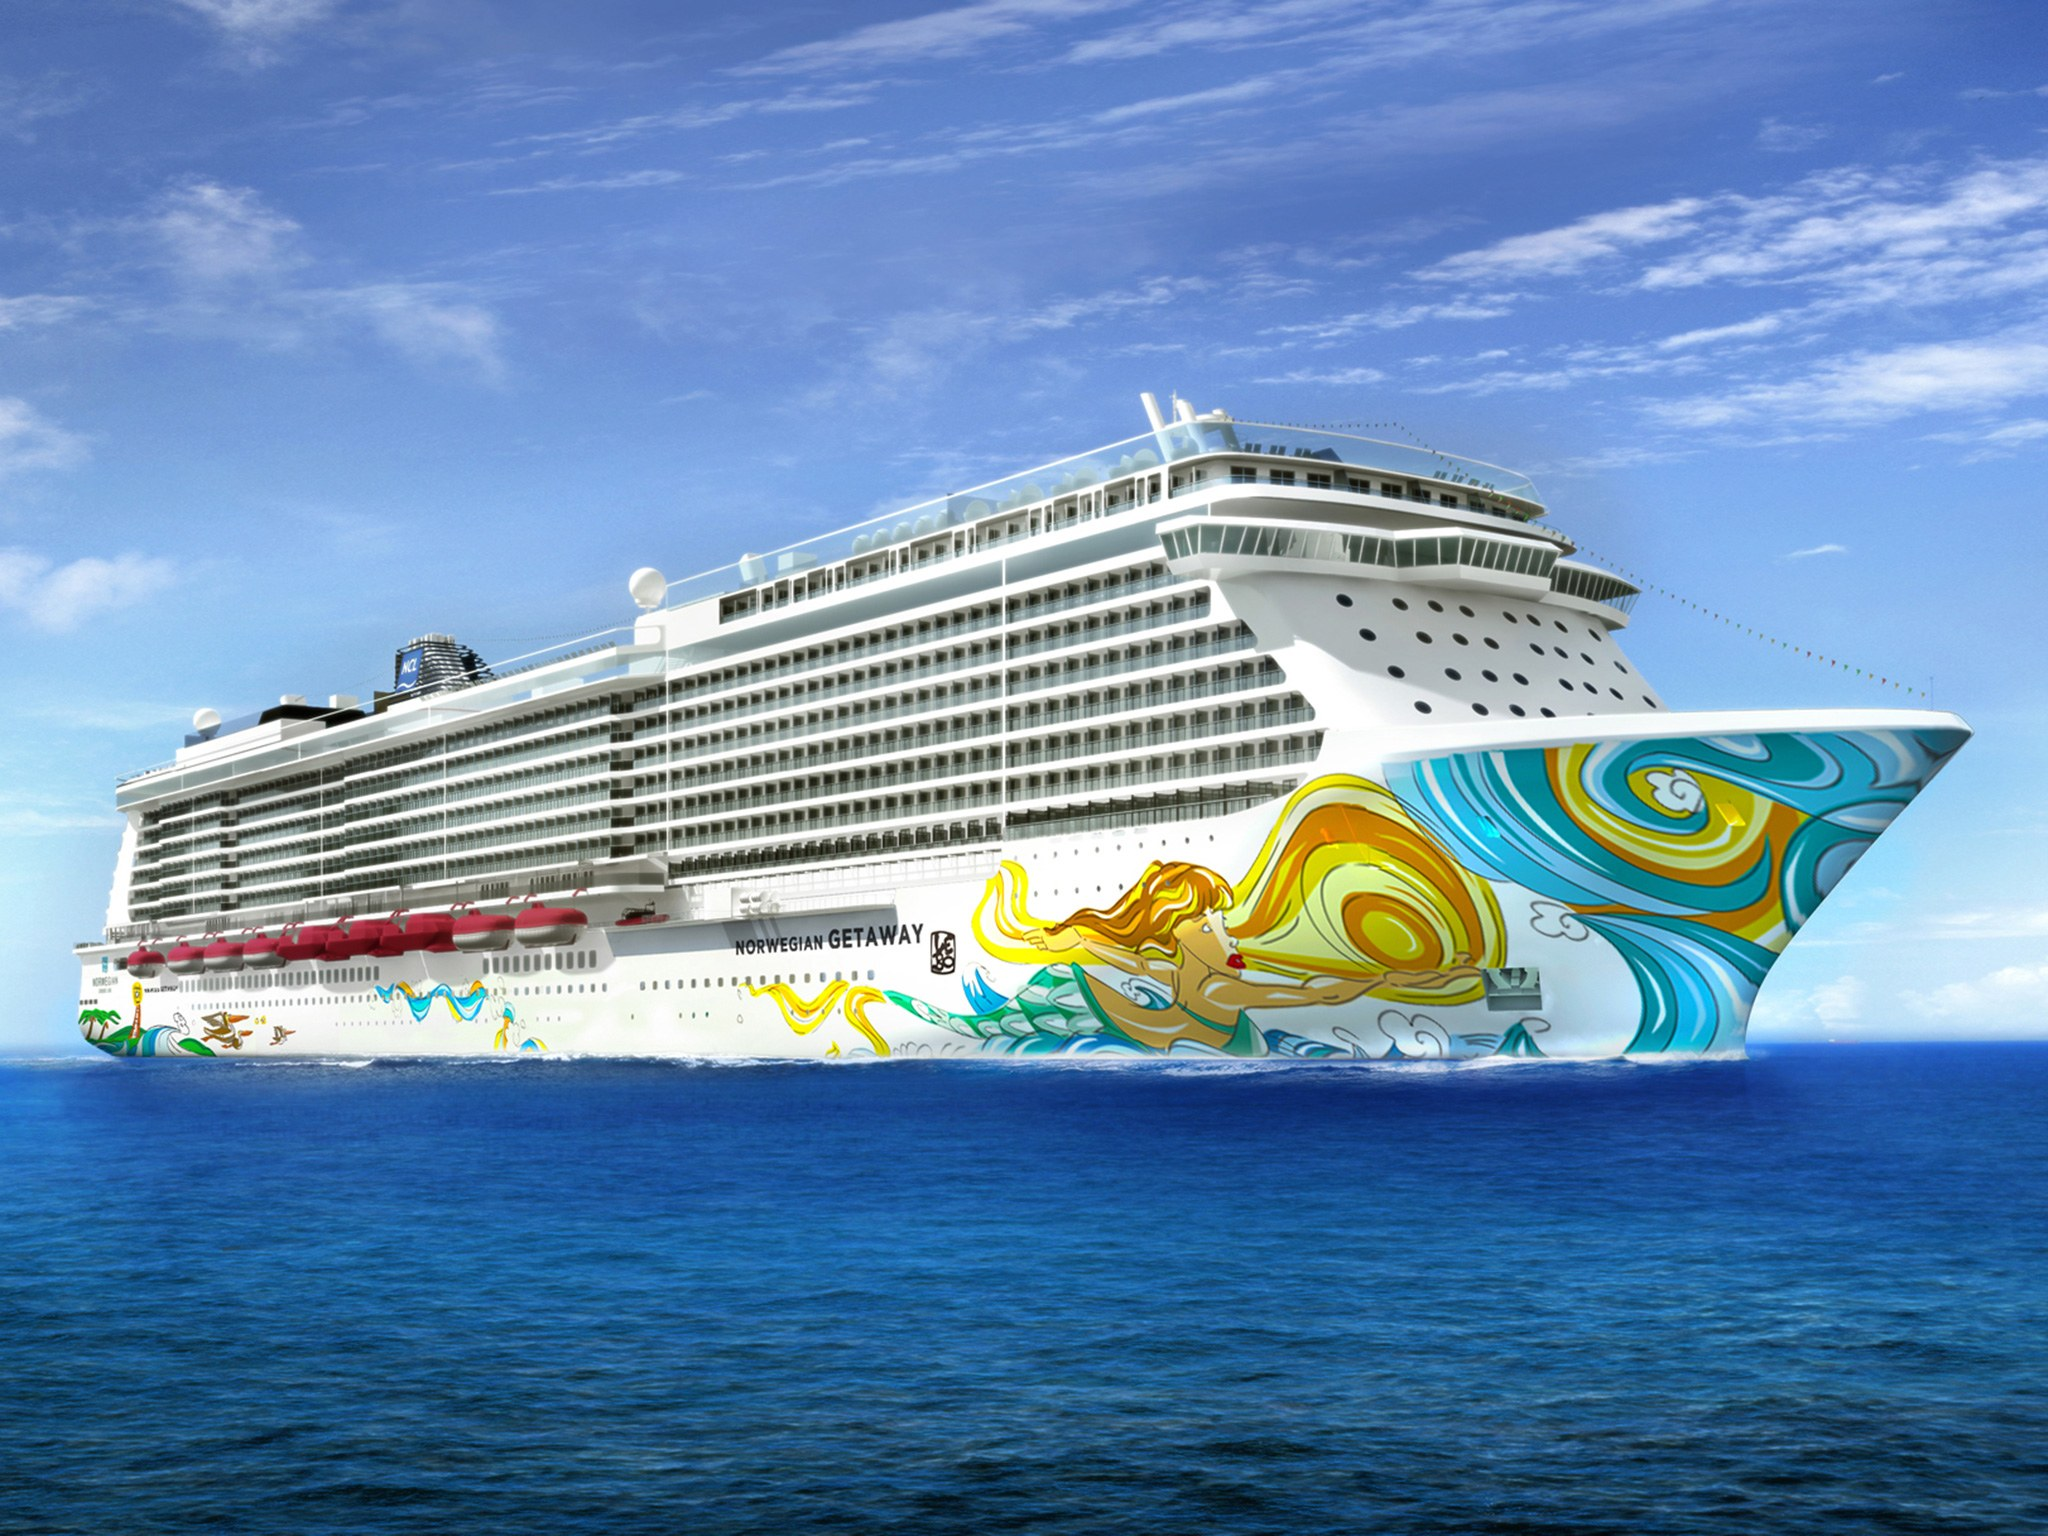 Norwegian Cruise Line provides first look at the new project ...